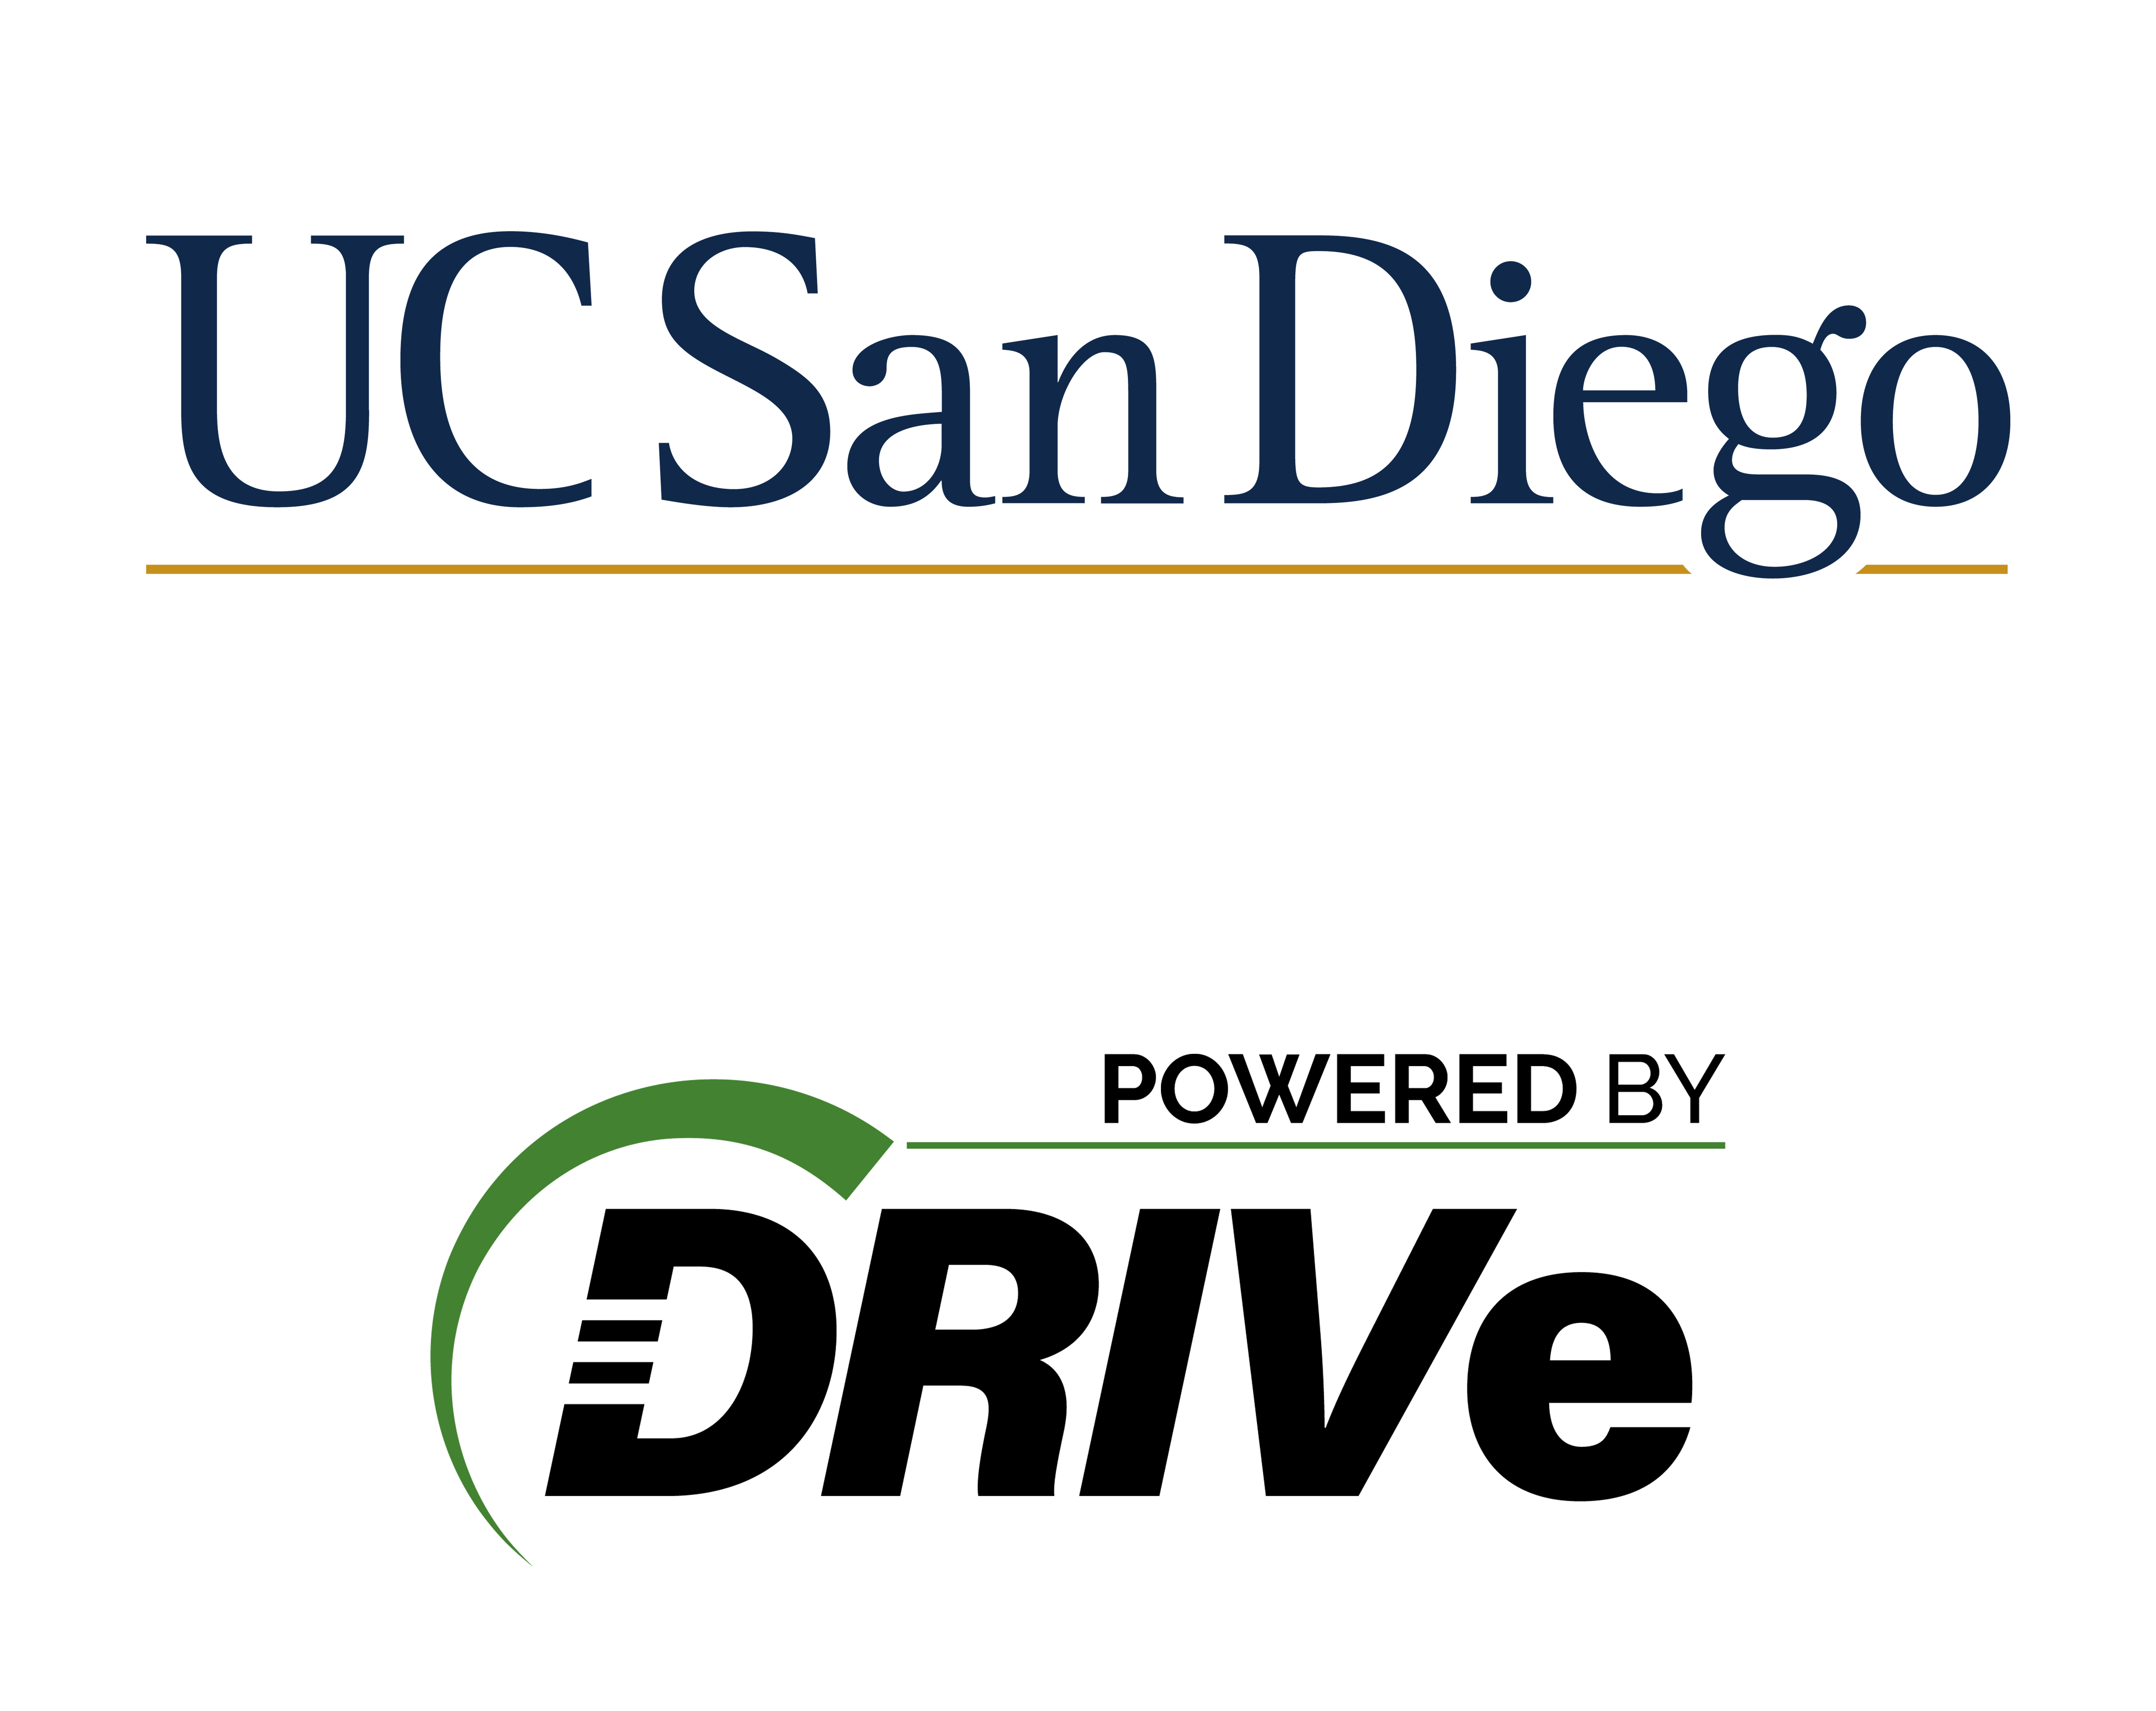 UCSD Science Logo